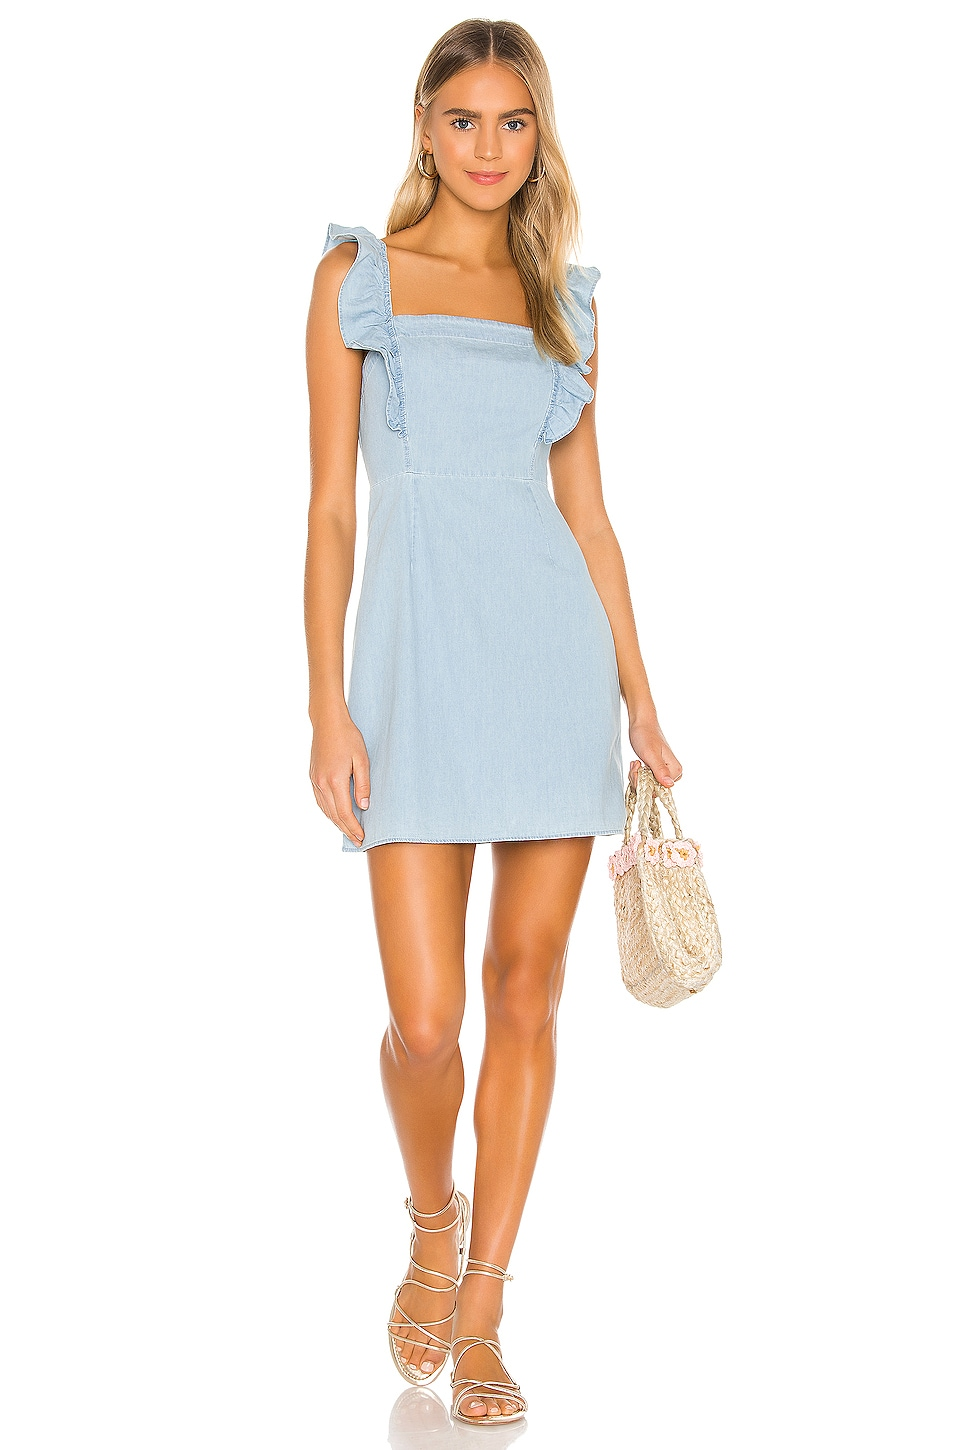 JACK by BB Dakota Chambray All Day Dress             BB Dakota                                                                                                       CA$ 108.89 15